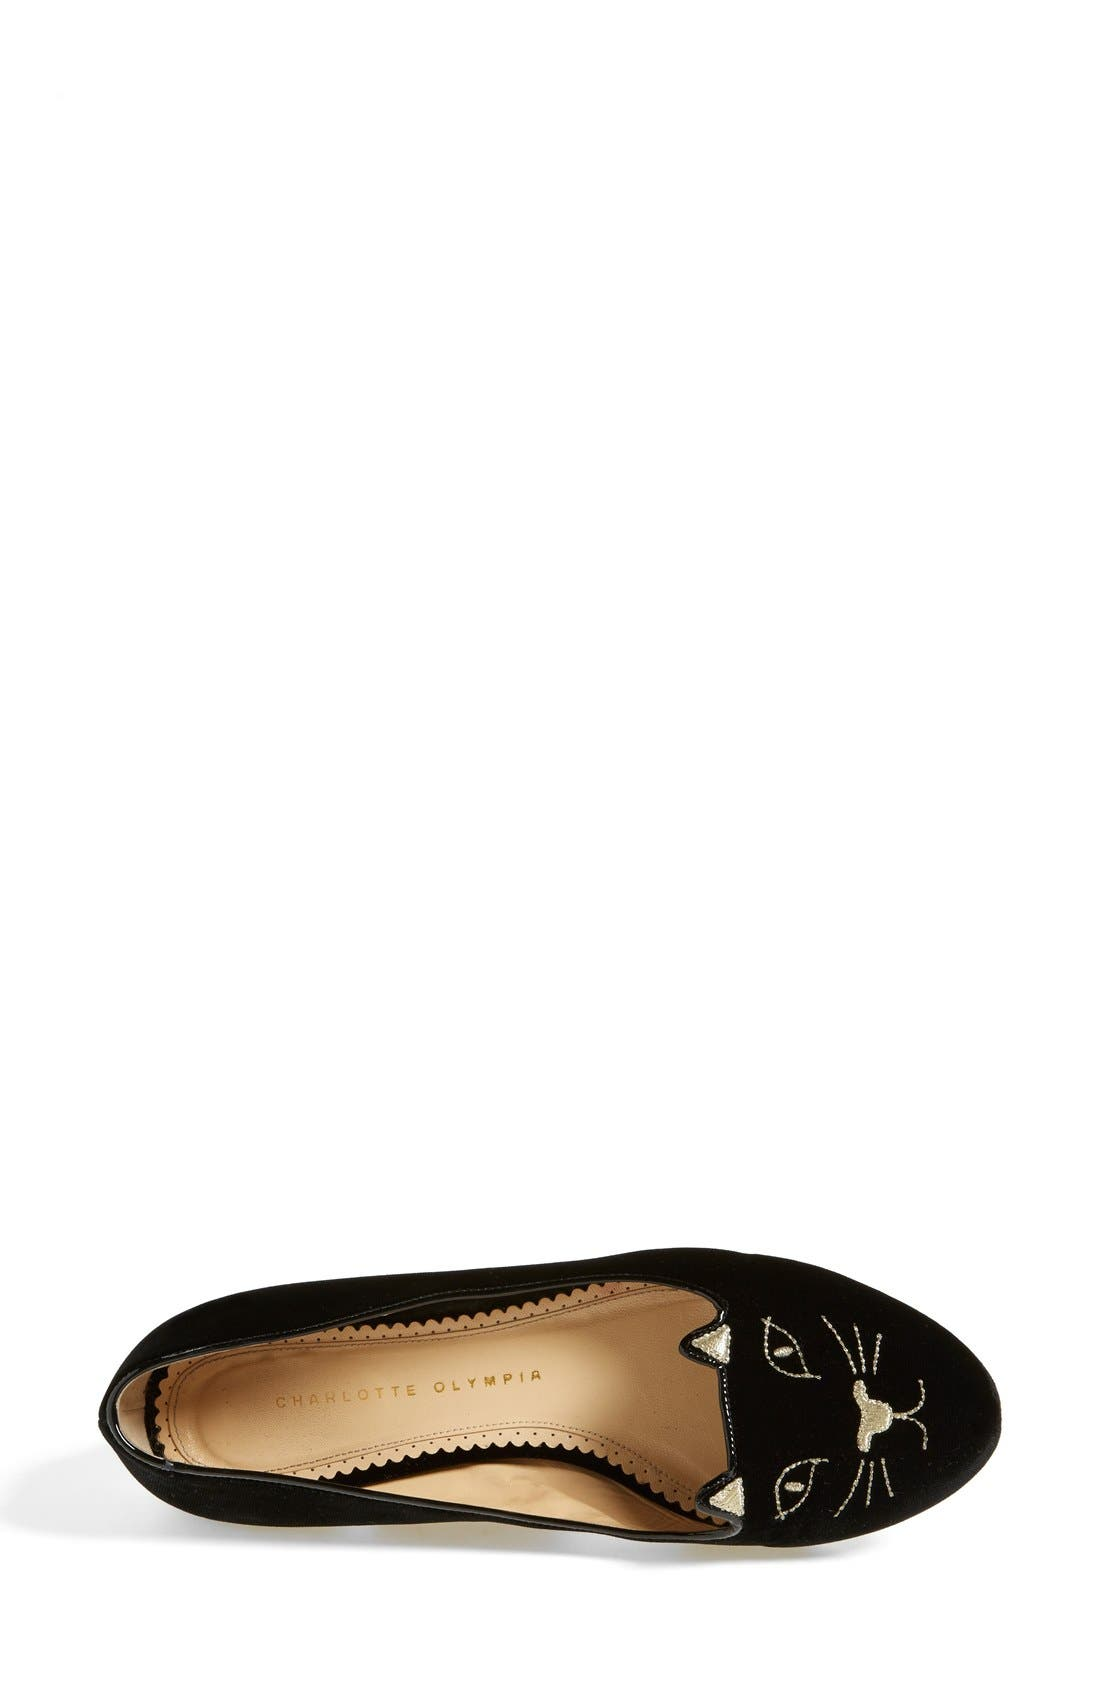 Alternate Image 3  - Charlotte Olympia 'Kitty' Flat (Women)